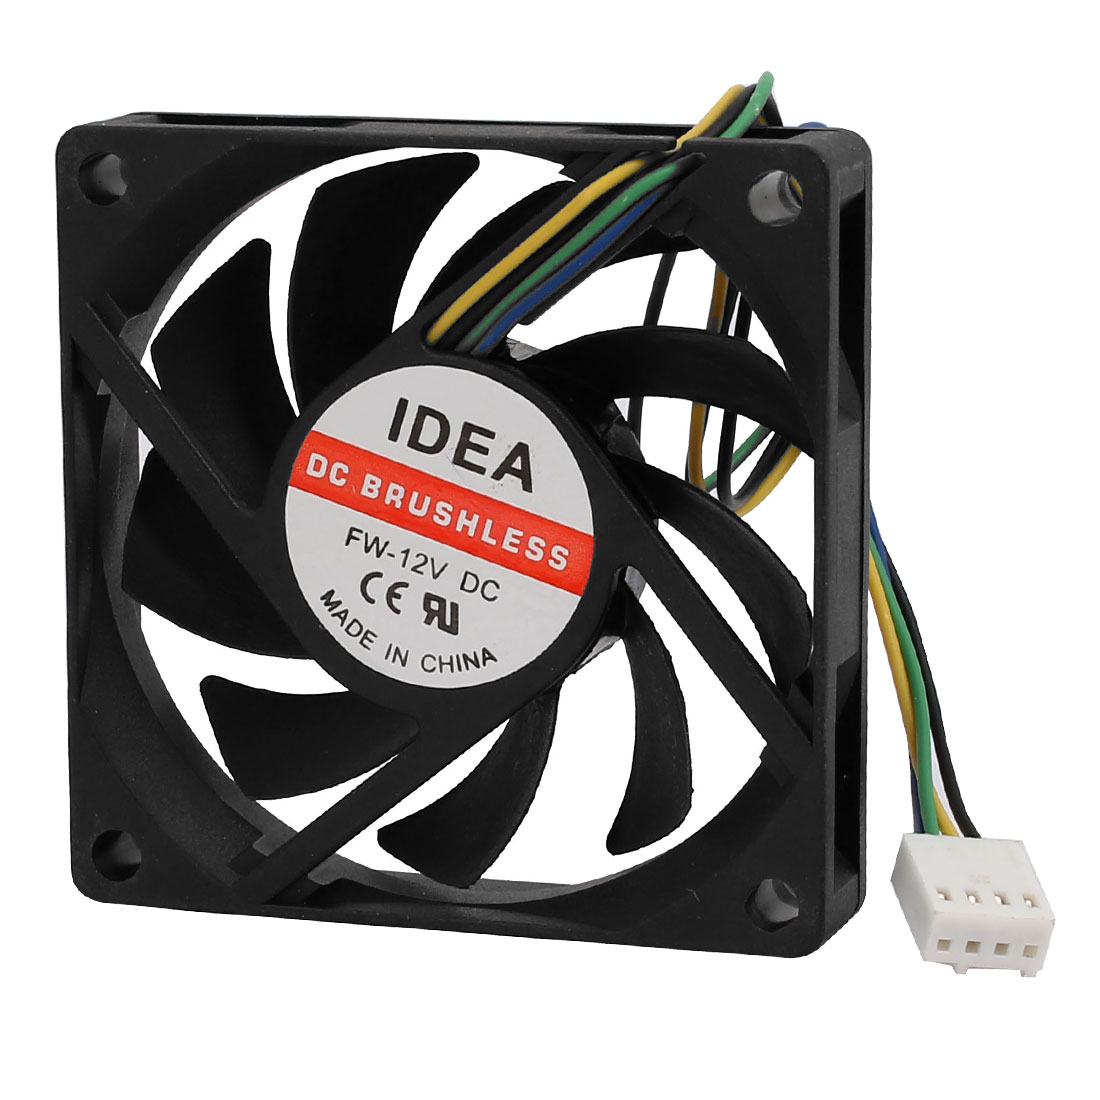 70mmx70mmx15mm Square Black Plastic DC 12V Heatsink Cooling Fan for PC Case